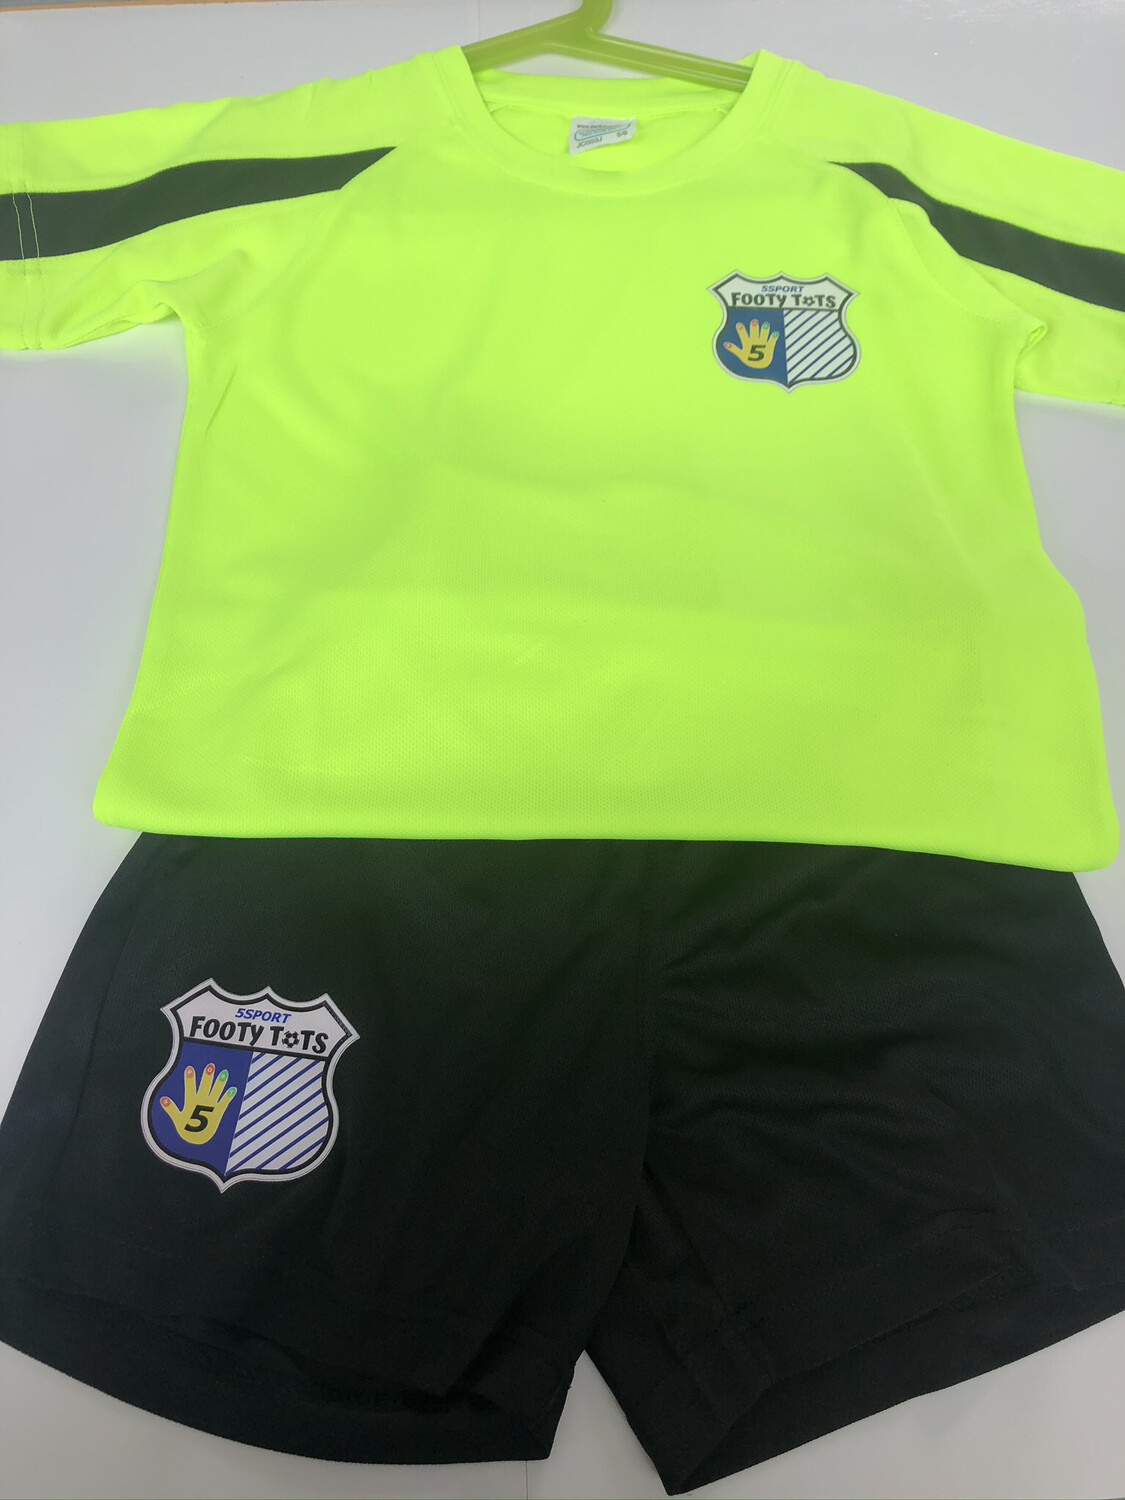 5Sport FootyTots - Full Kit